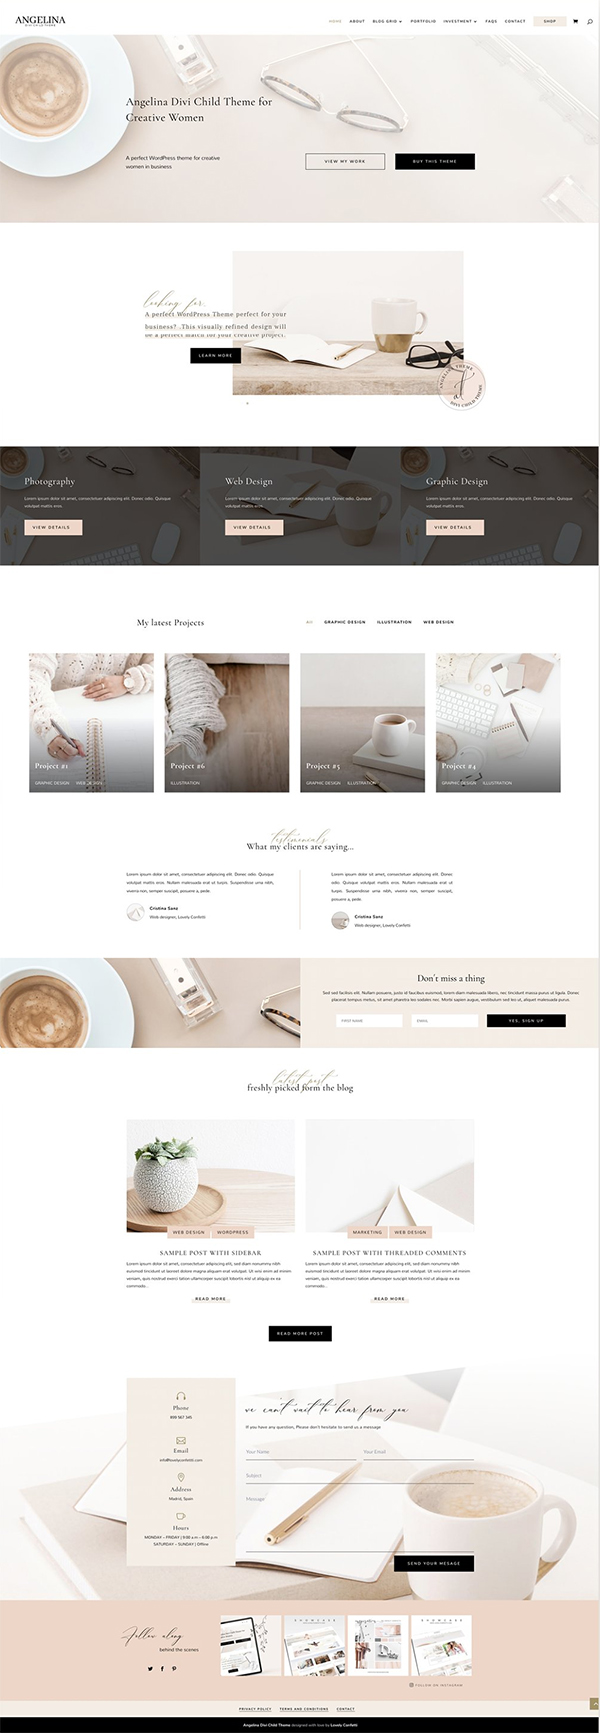 Angelina Business Divi Child Theme